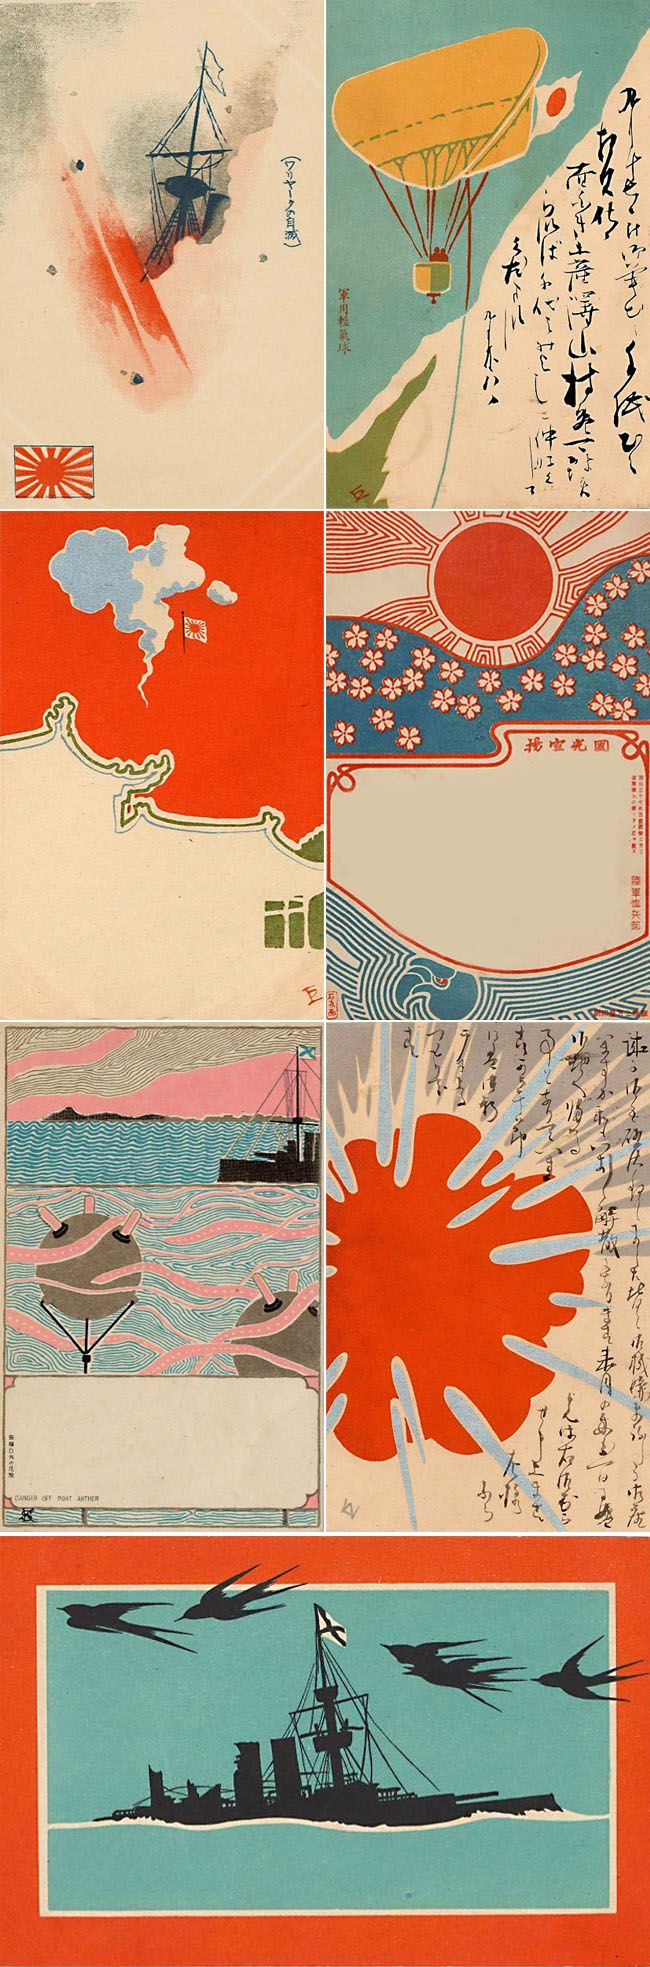 Vintage Japanese postcards; Leonard A. Lauder Collection of Japanese Postcards at the Museum of Fine Arts, Boston